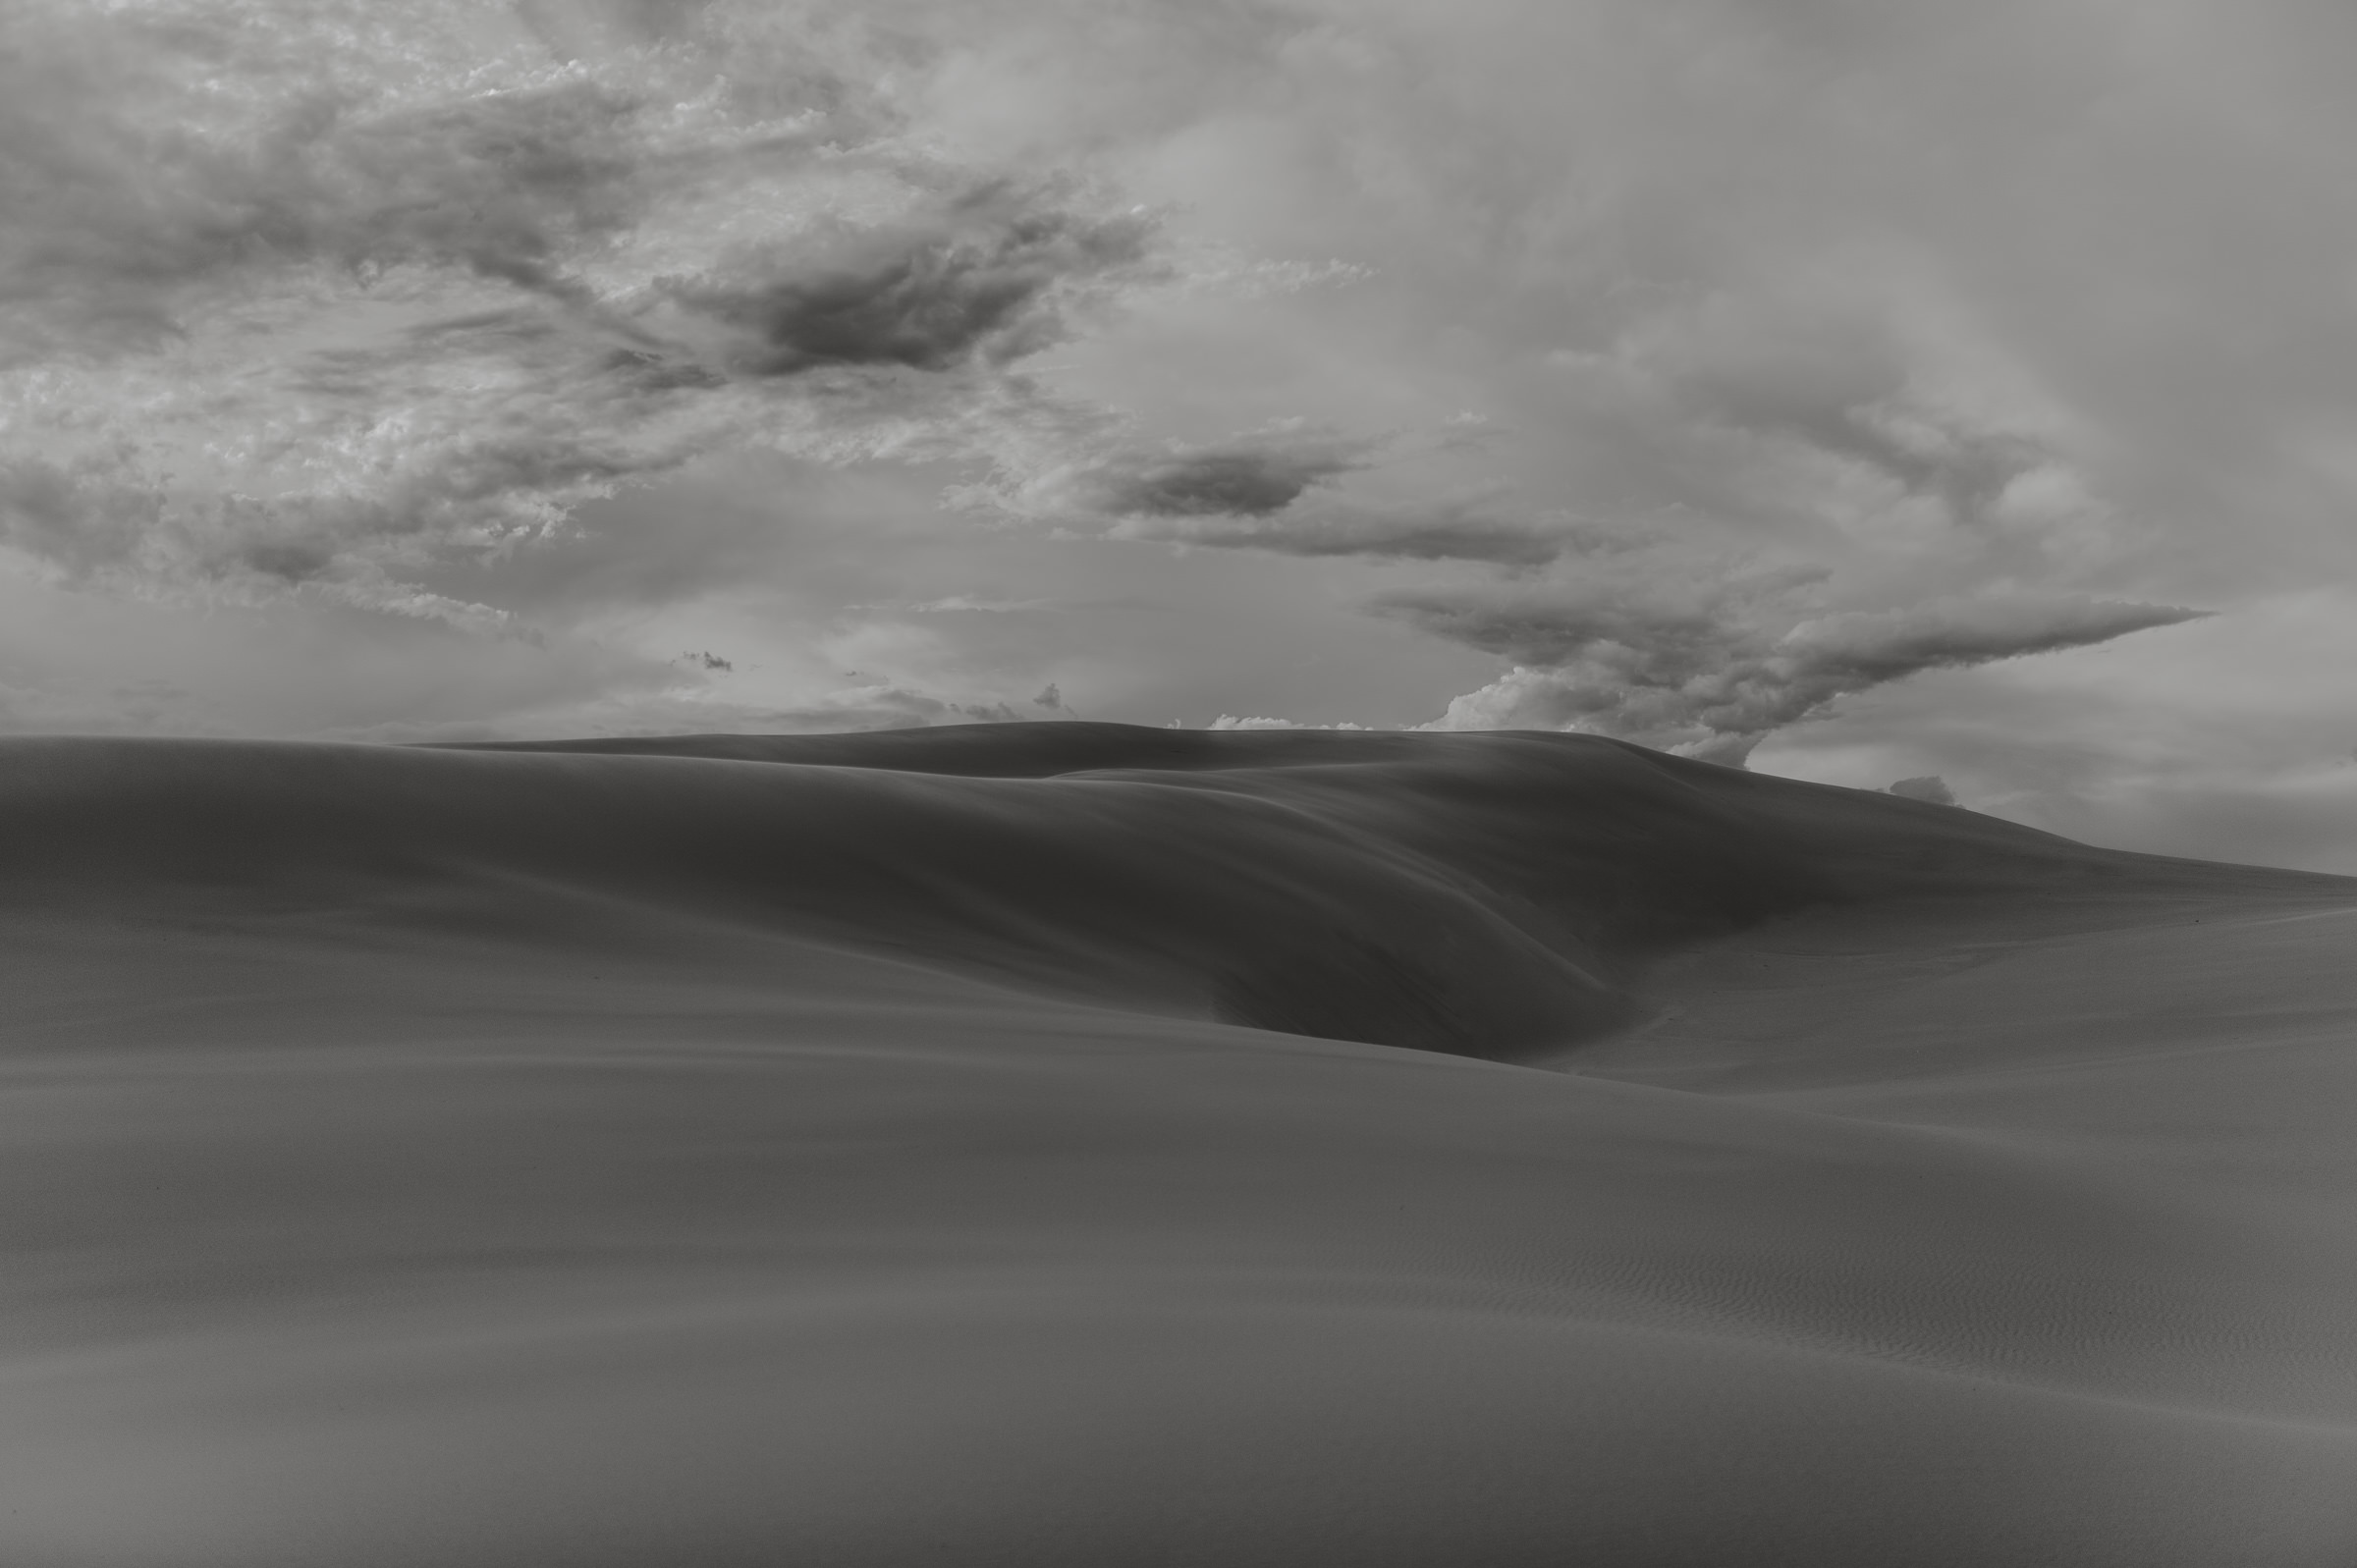 Courtney_Jim_Stockton_Dunes_Eshoot_Blog-8.jpg